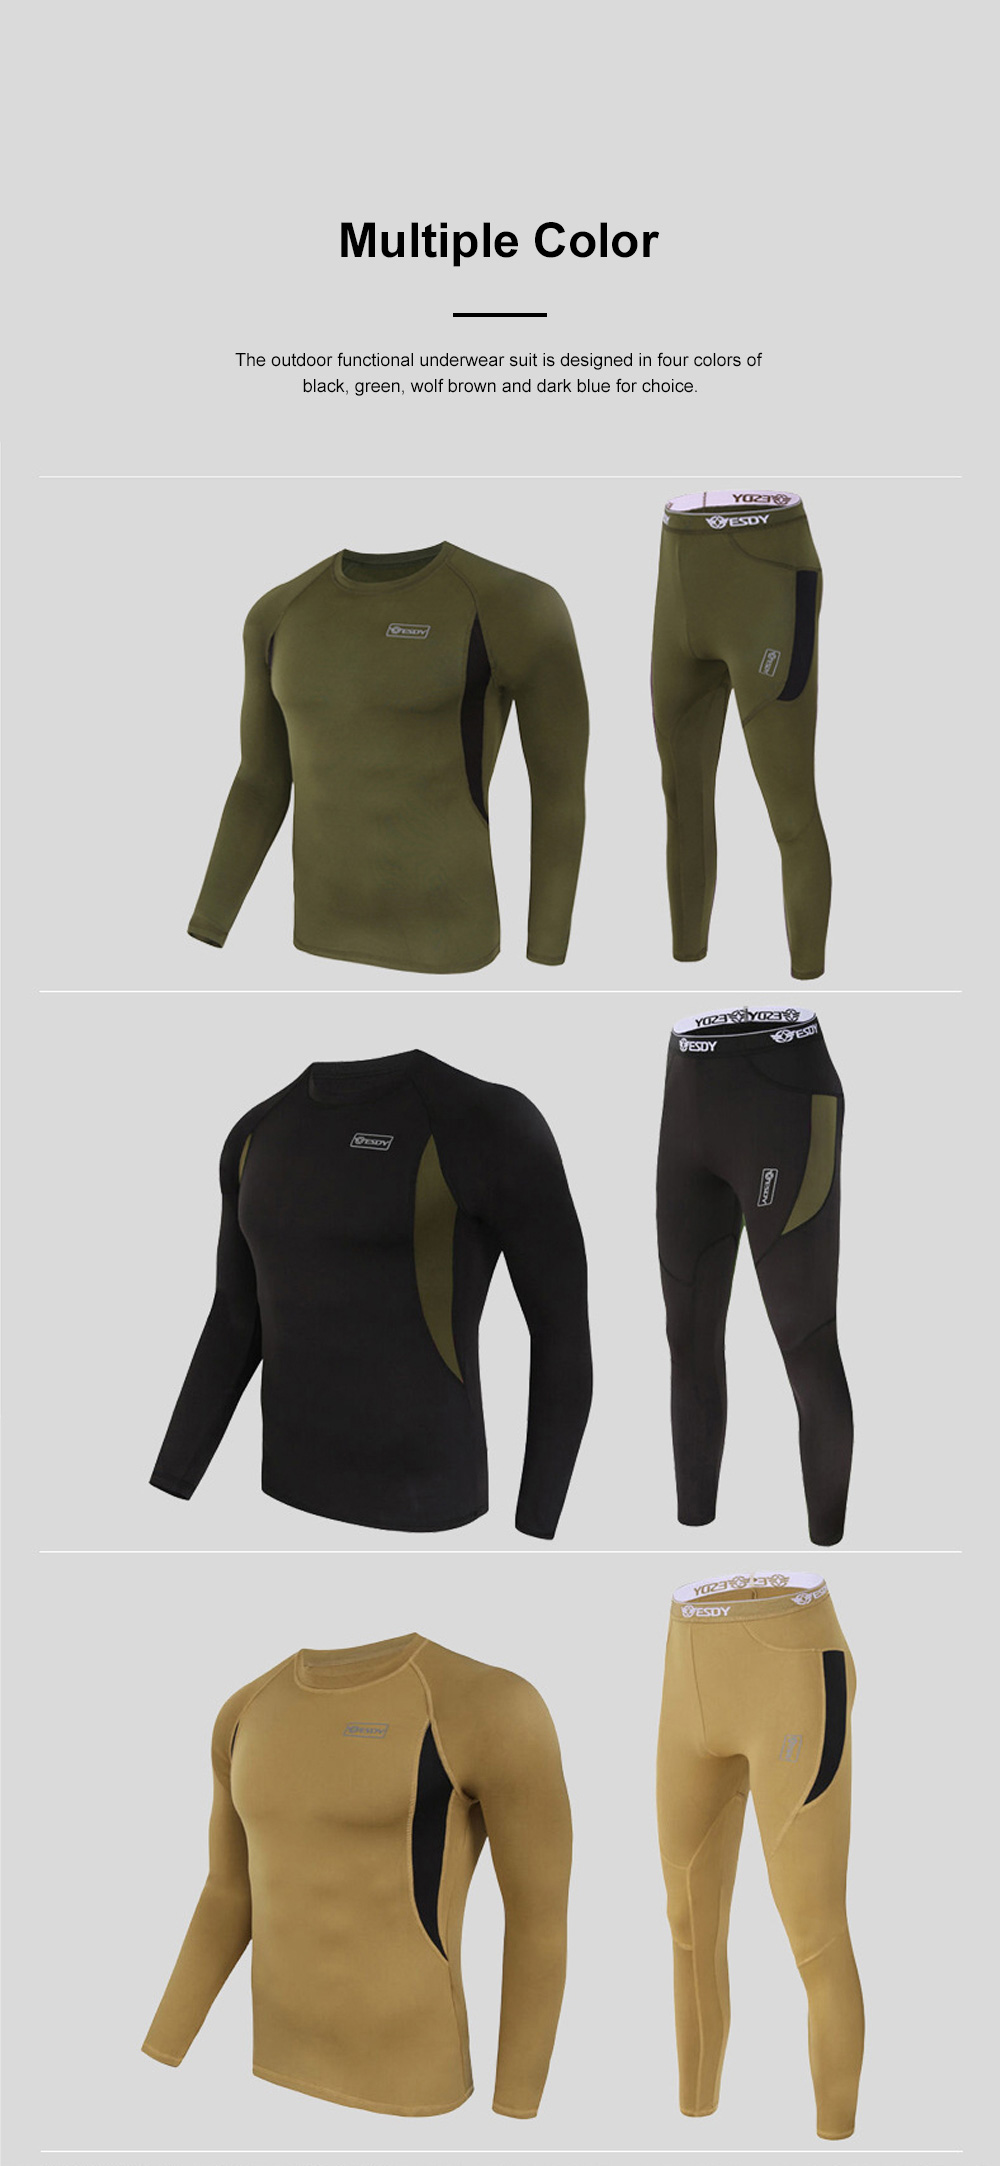 Outdoor Functional Underwear Suit for Outdoors Climbing Bicycle Riding Thermal Fleece Underwear Sweat Suit PT Uniform 6